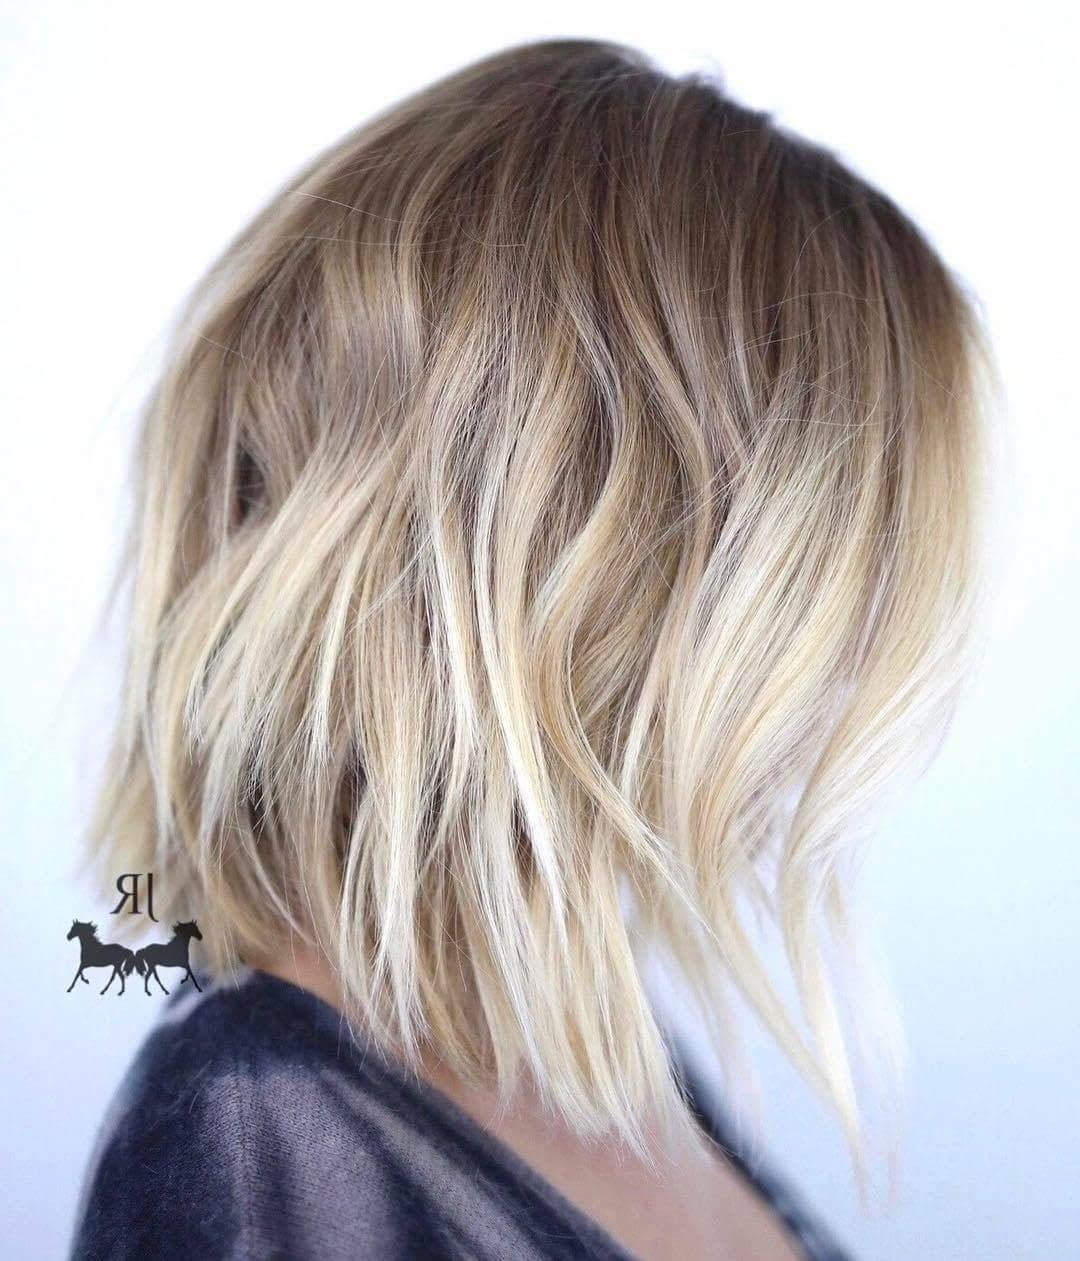 50 Fresh Short Blonde Hair Ideas To Update Your Style In 2018 Intended For Honey Blonde Layered Bob Hairstyles With Short Back (View 7 of 20)